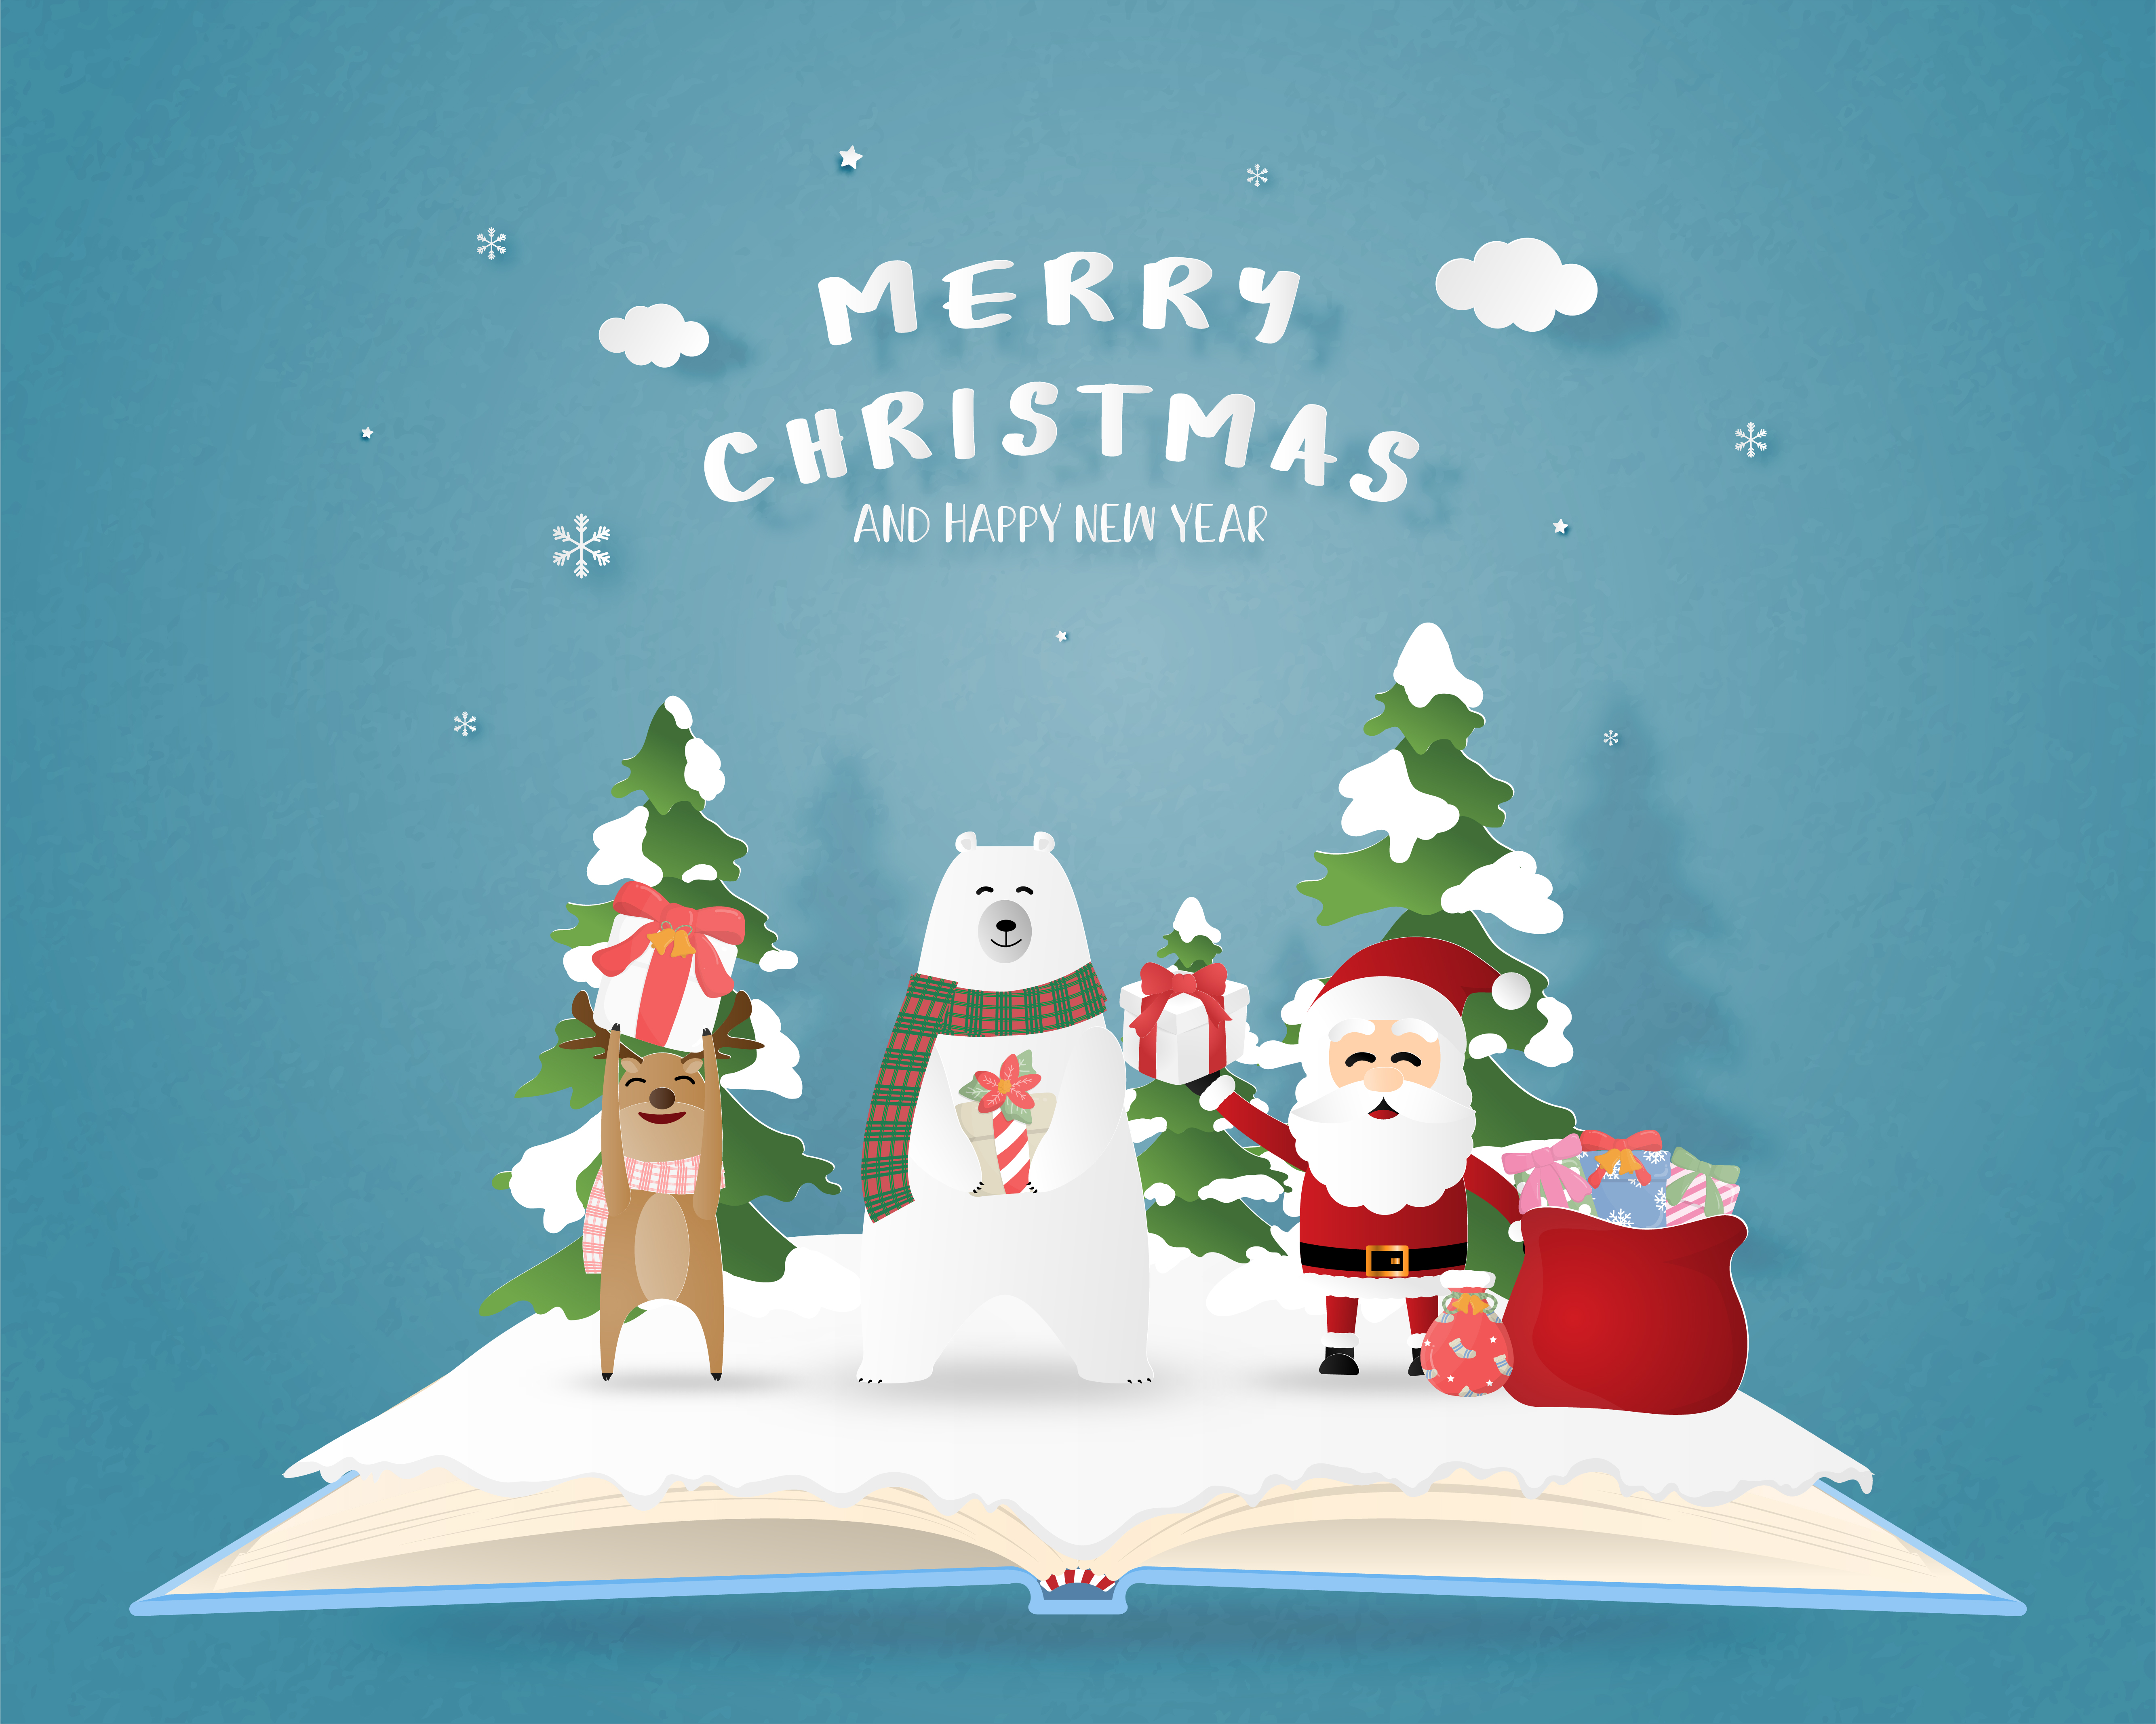 Merry Christmas And Happy New Year Greeting Card In Paper Cut Style Vector Illustration Christmas Celebration Background With Santa Claus And Reindeer Banner Flyer Poster Wallpaper Template Download Free Vectors Clipart